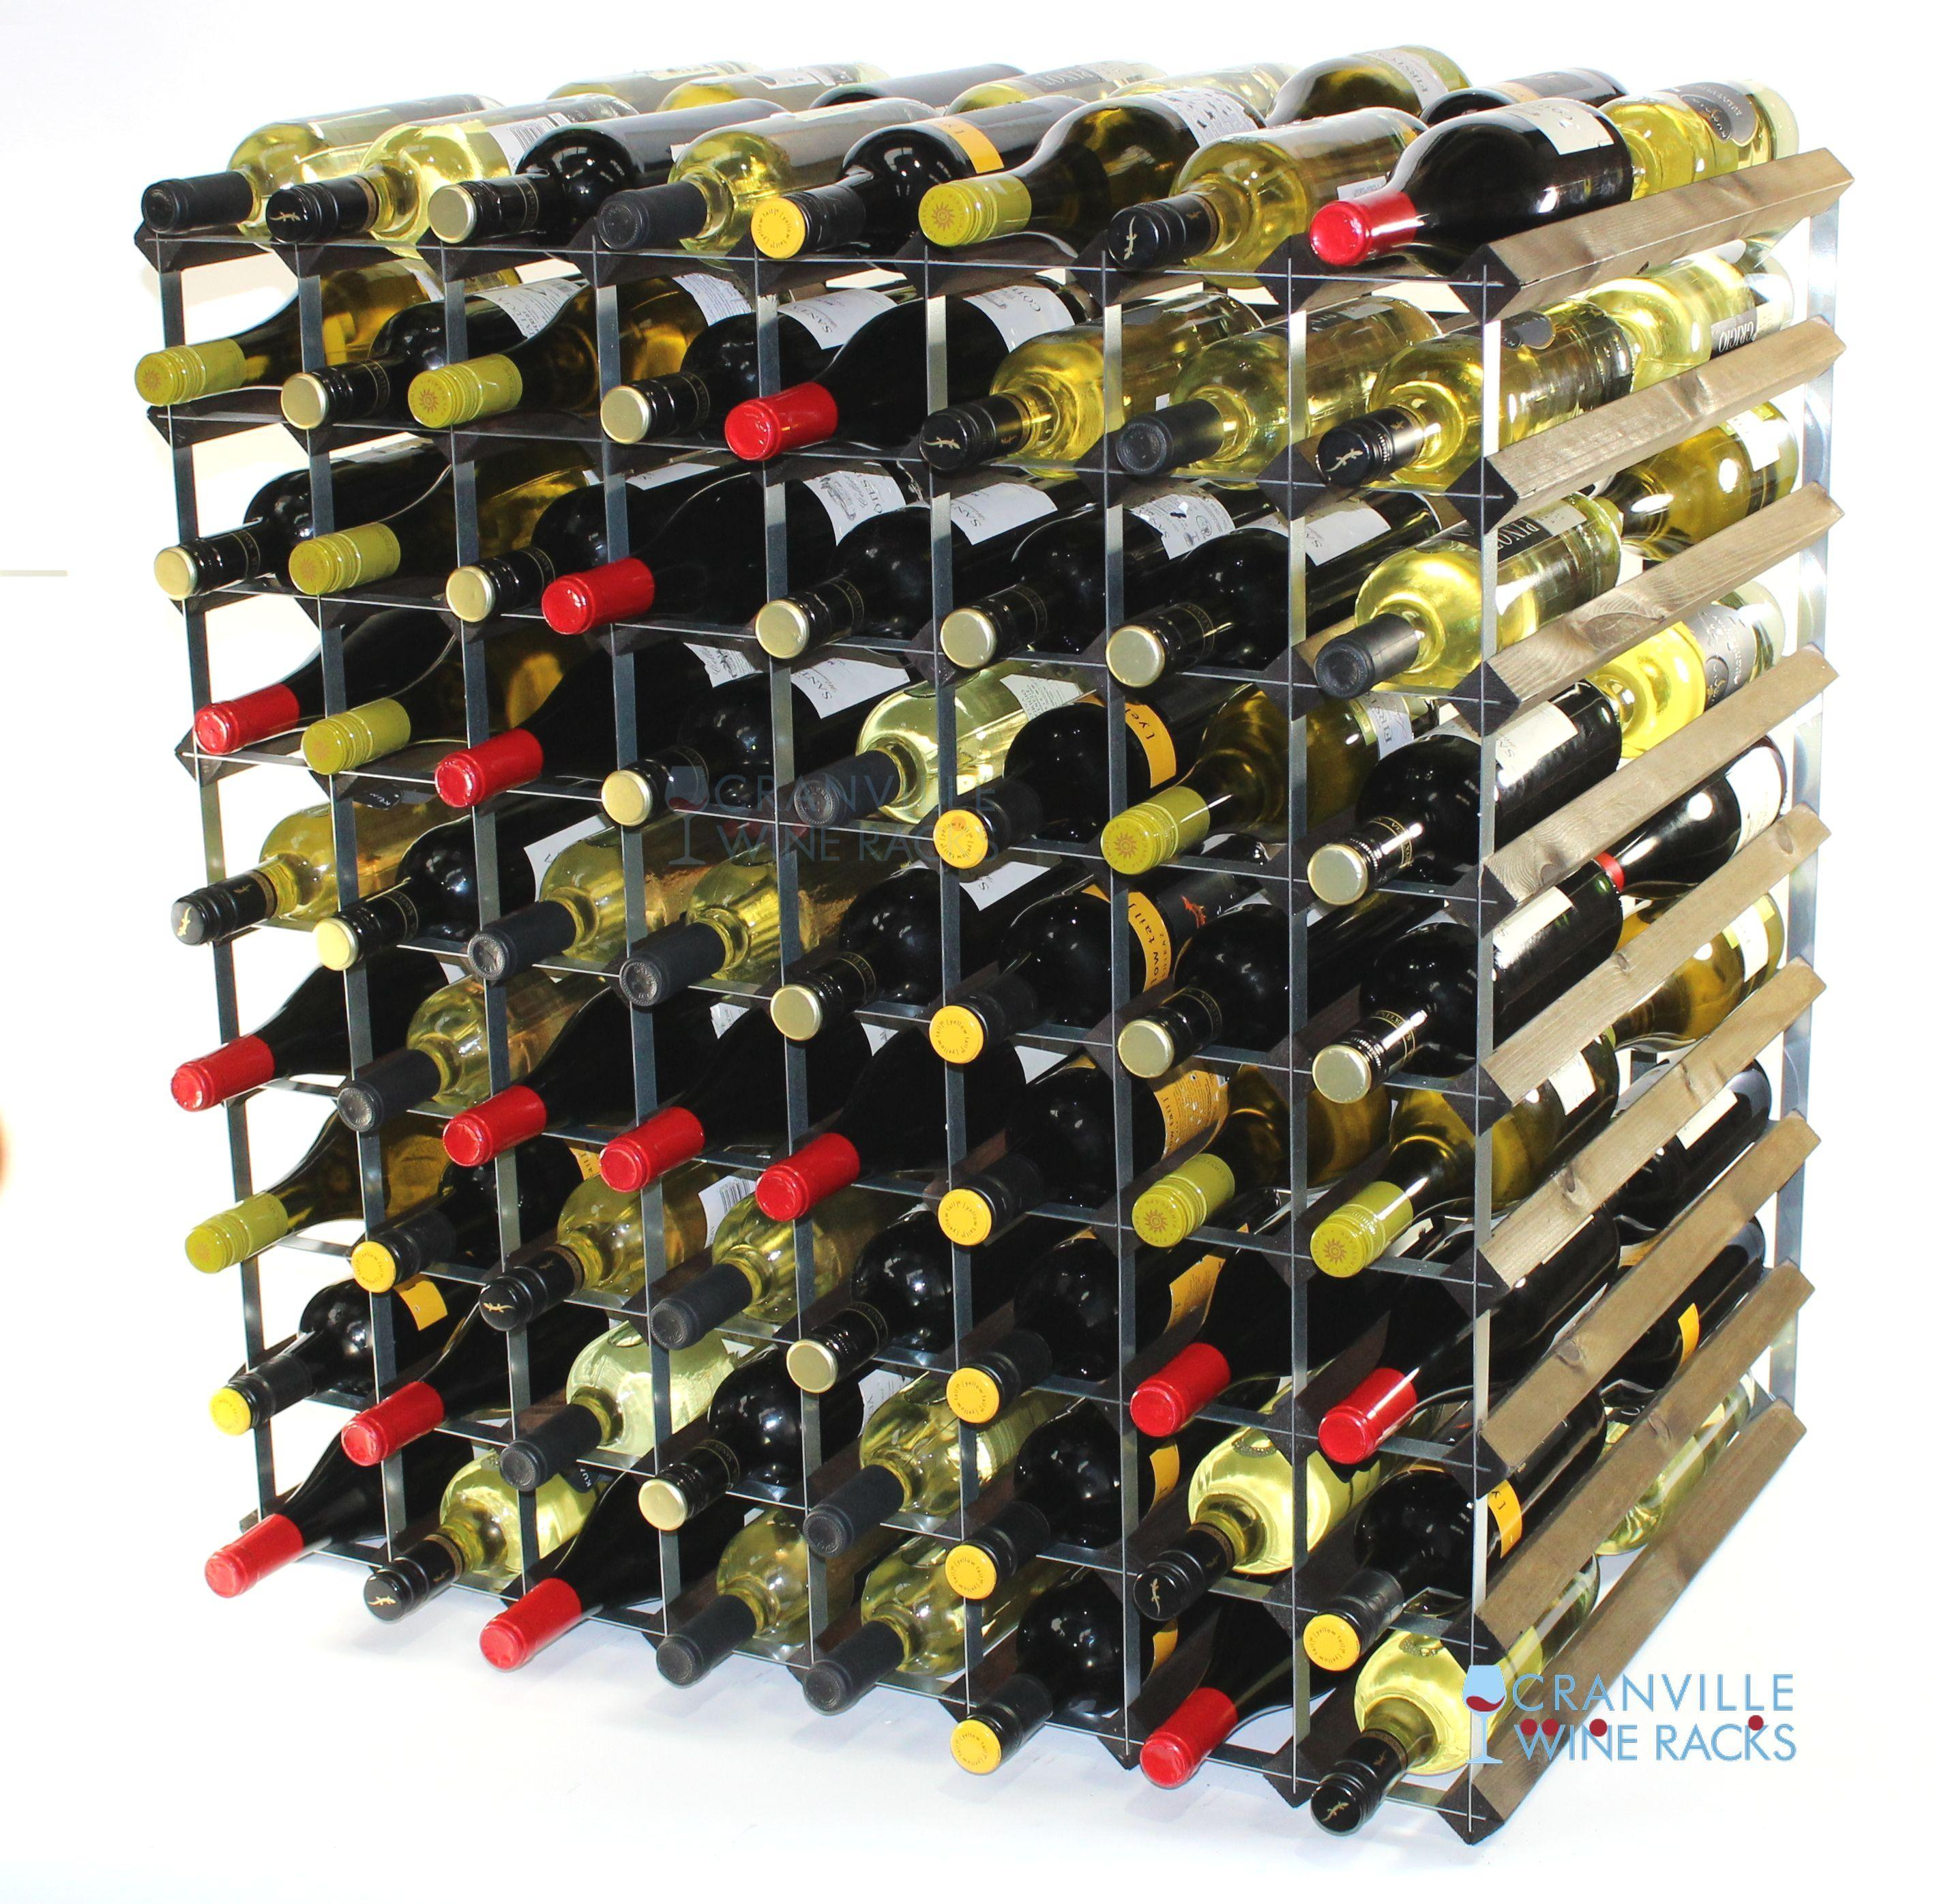 Double Depth 144 Wine Rack Ready Assembled Cranville